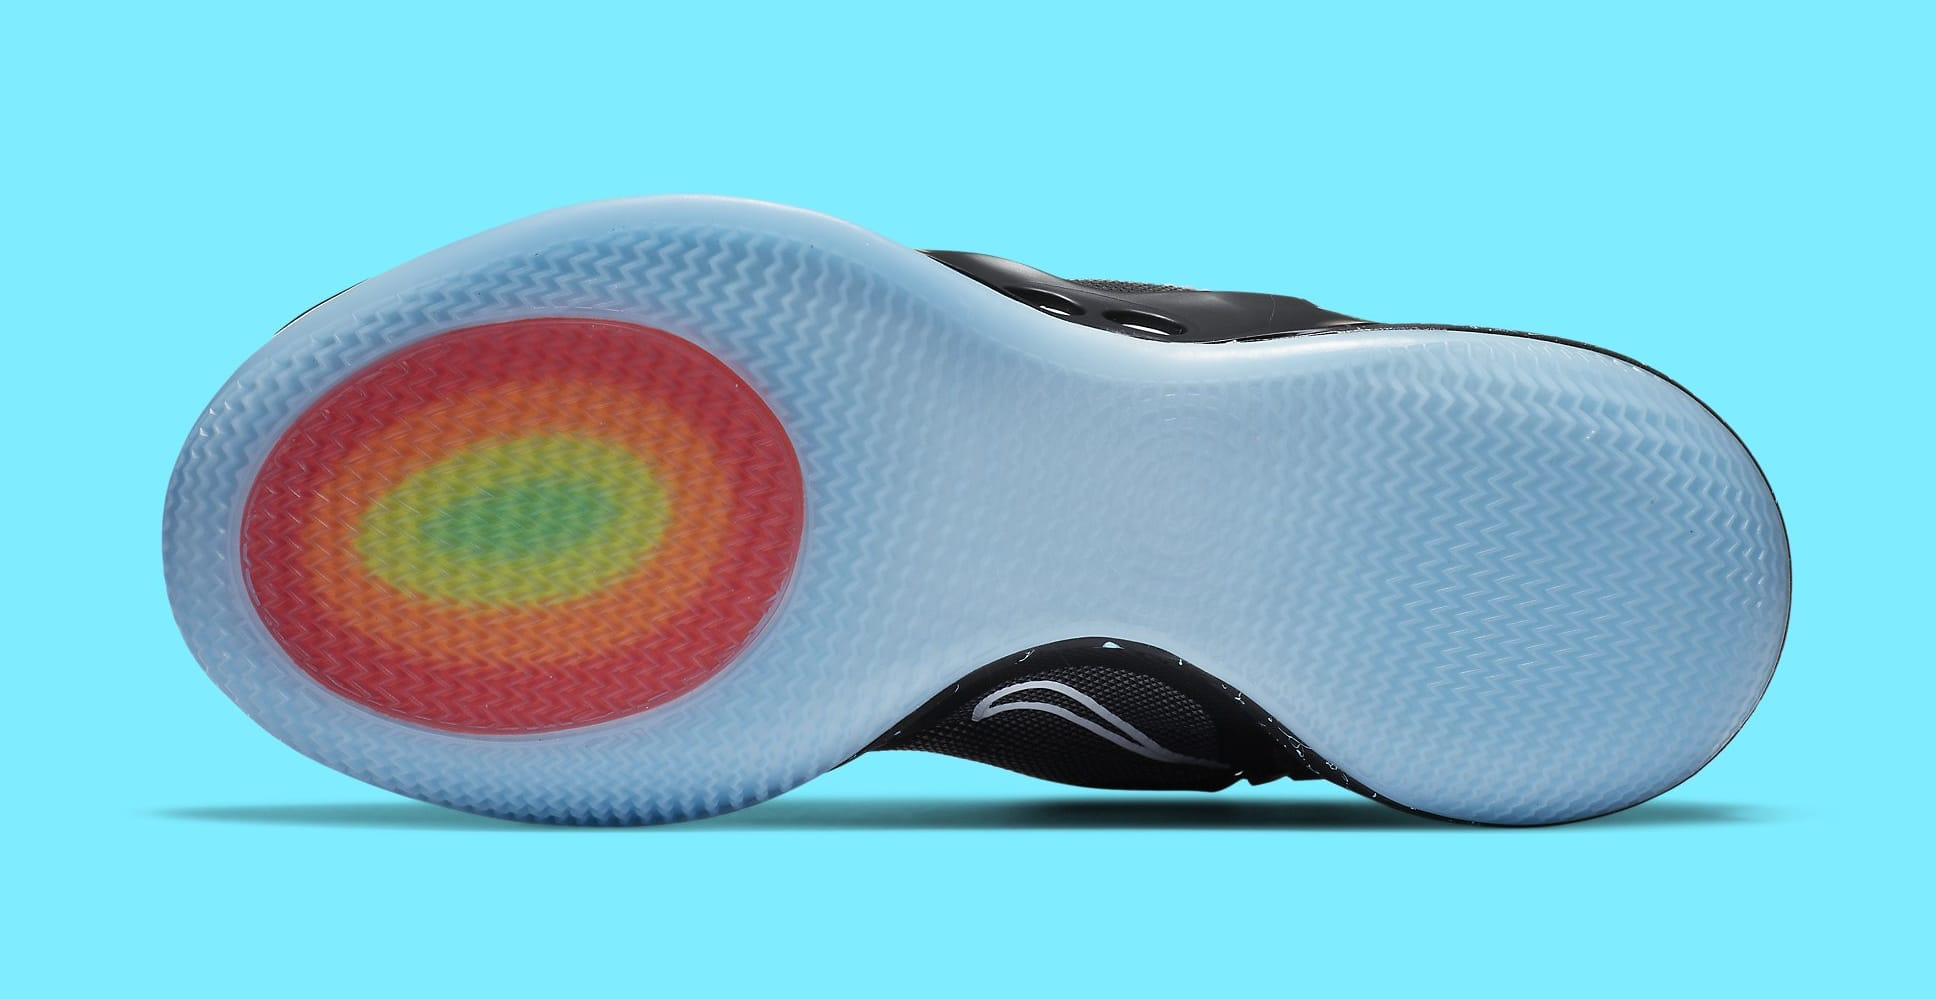 Nike Adapt BB 2.0 'Alternate Mag' CV2441-002 Outsole